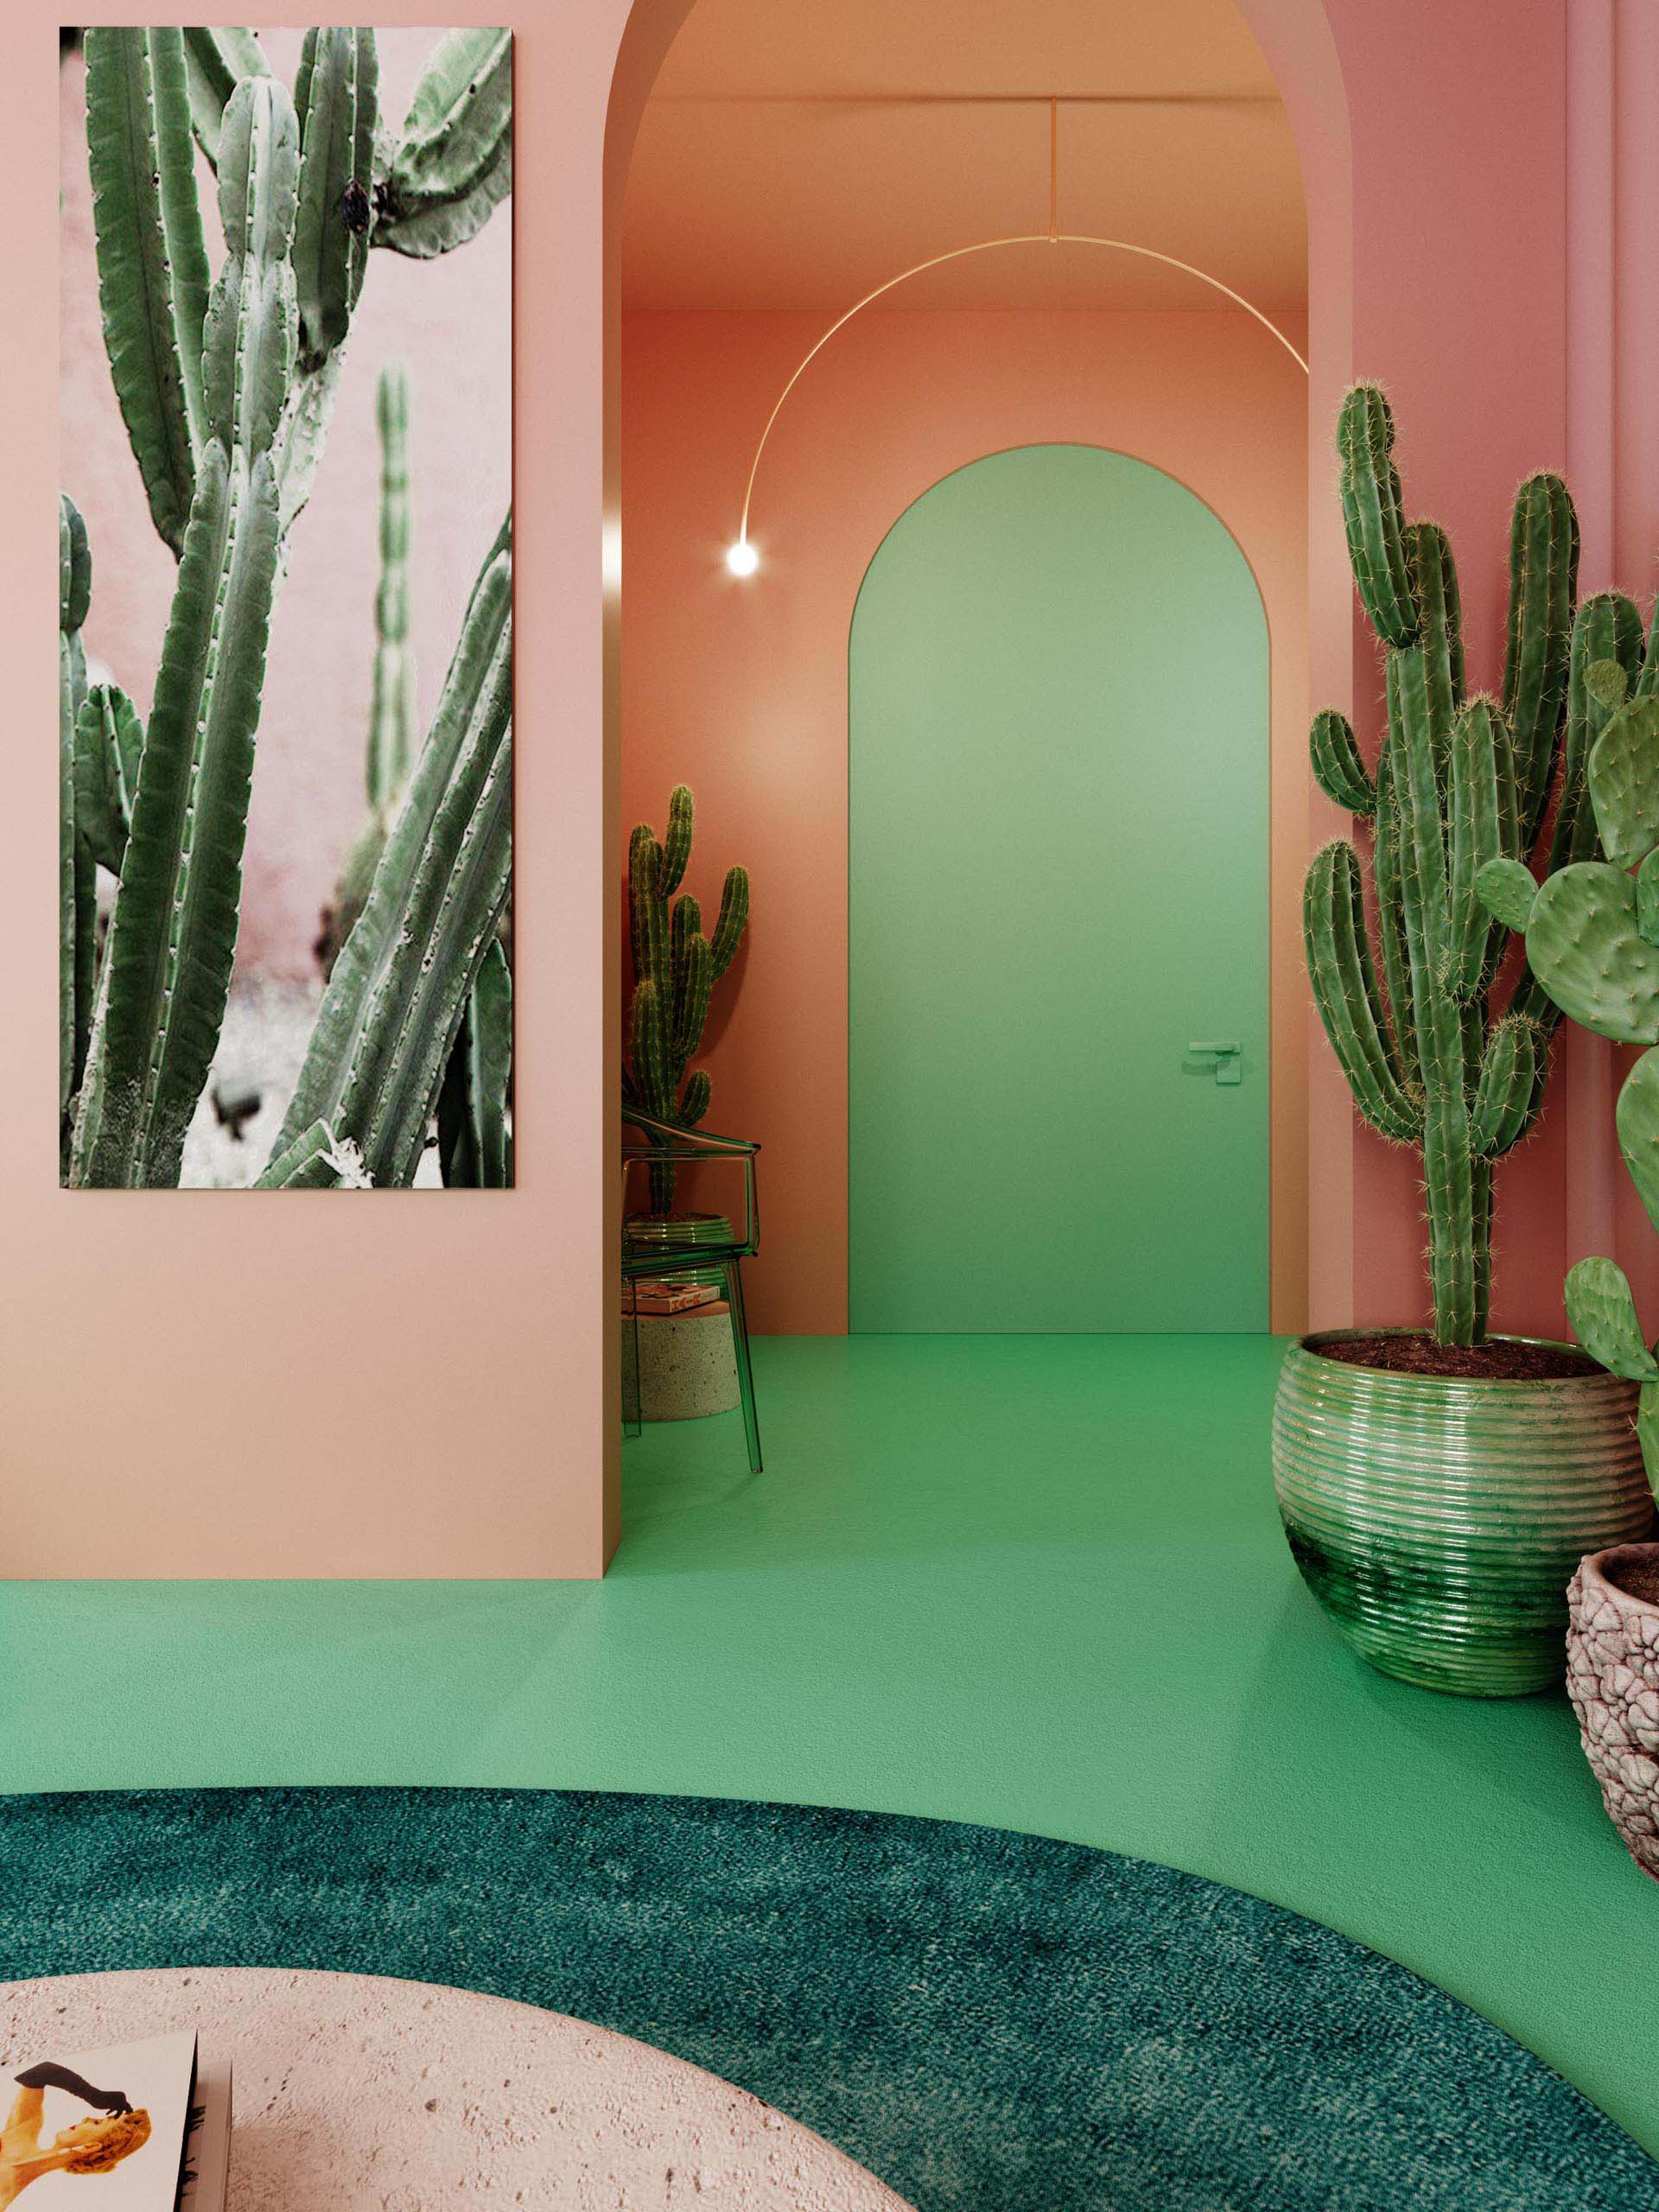 A green door welcomes visitors to this apartment, and one inside, the color palette is immediately visible, with pink walls and a concrete floor with a bright mint green finish.